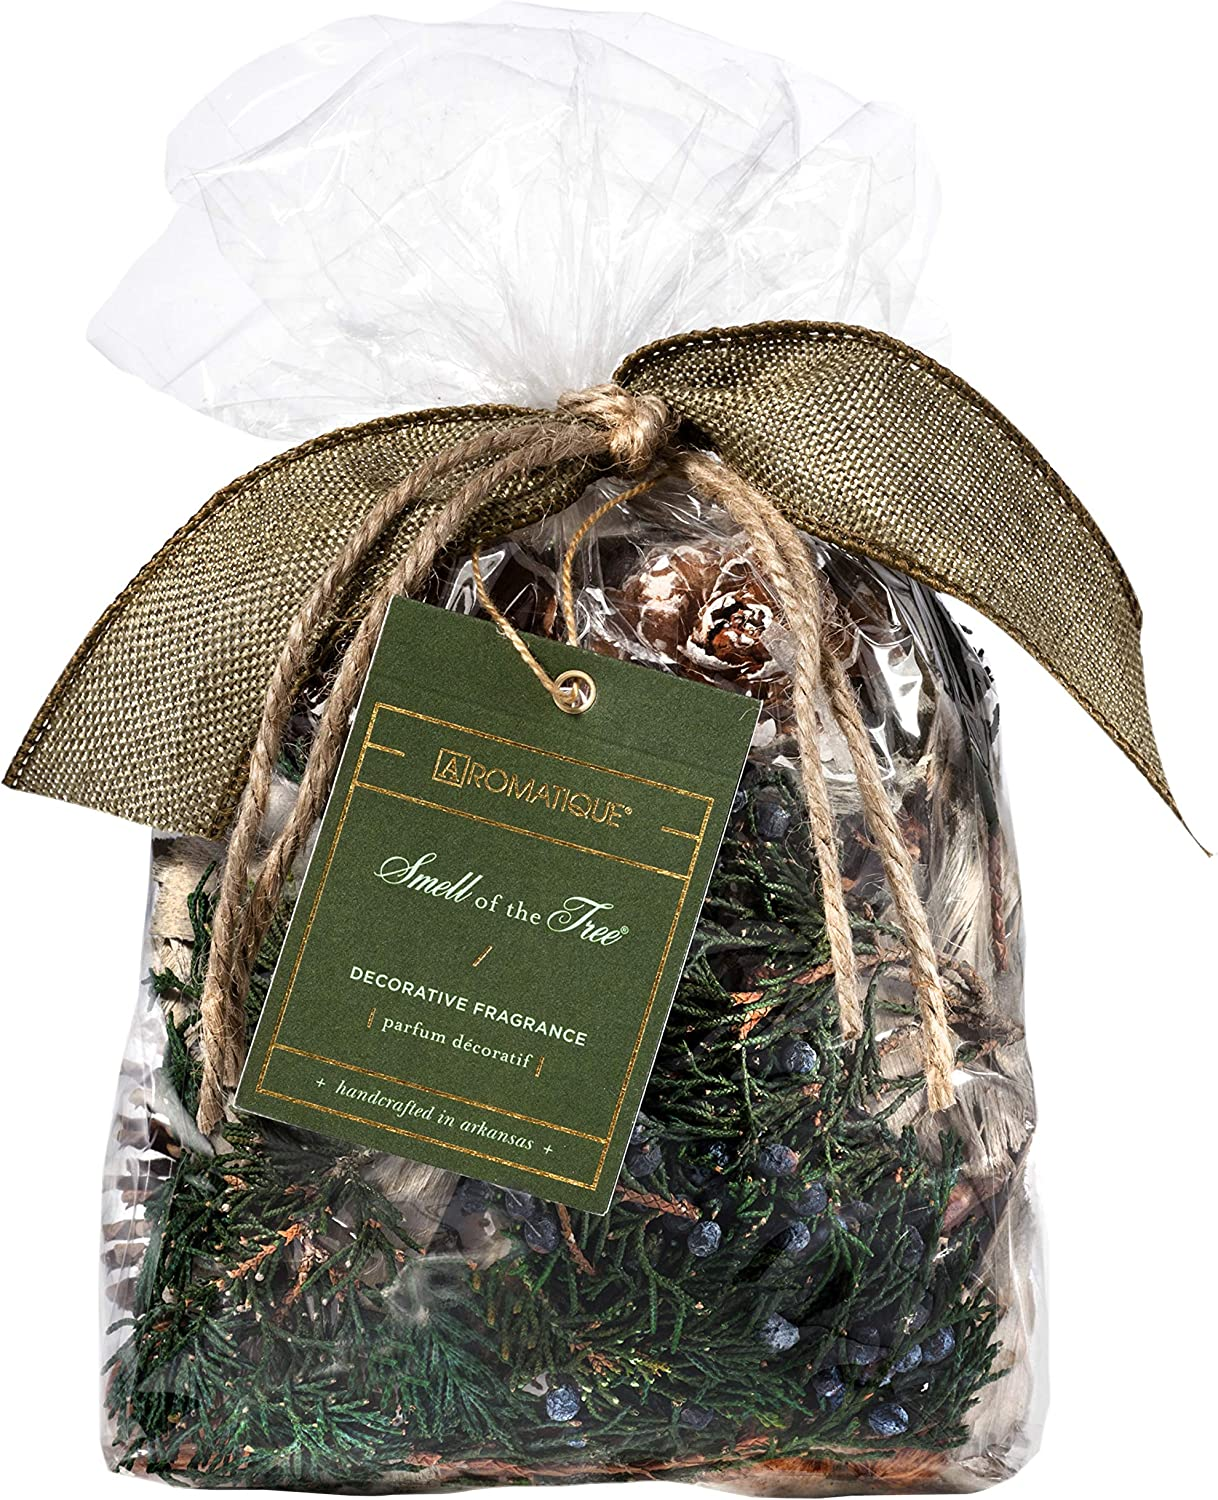 Aromatique 12 oz Bag Smell of The Tree Decorative Potpourri